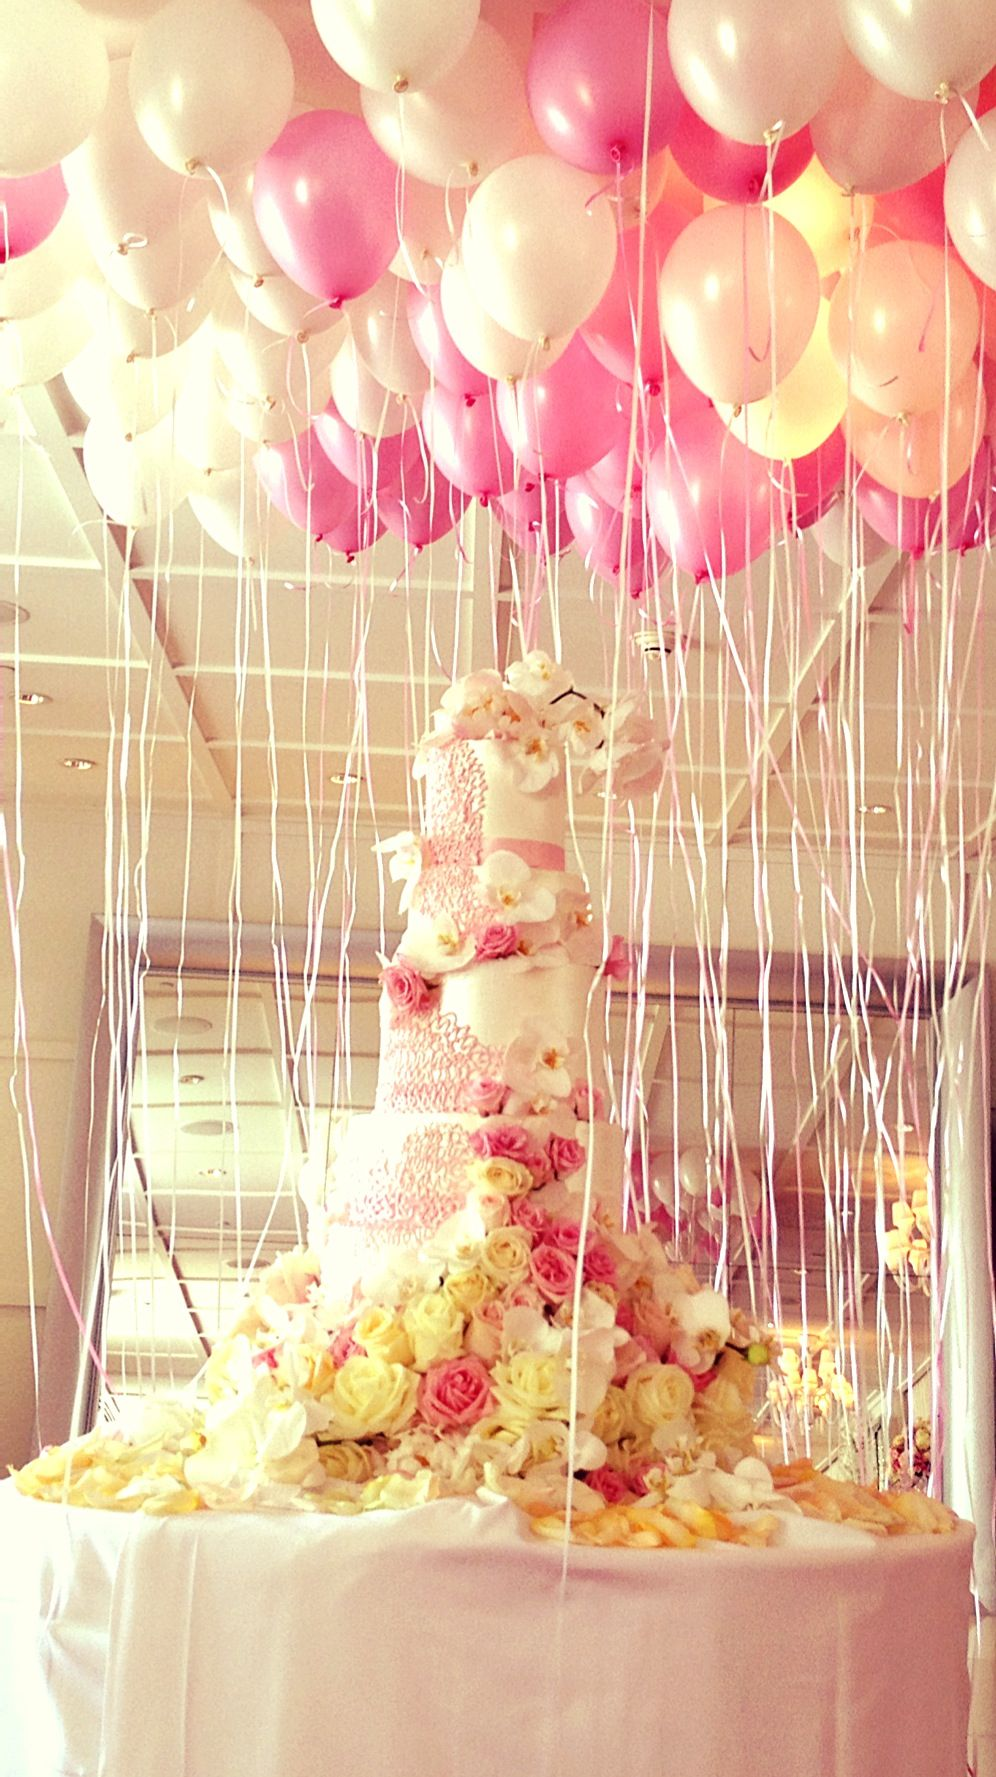 Amazing Cake Flowers By Dezign Shop Pink Pinterest Cake